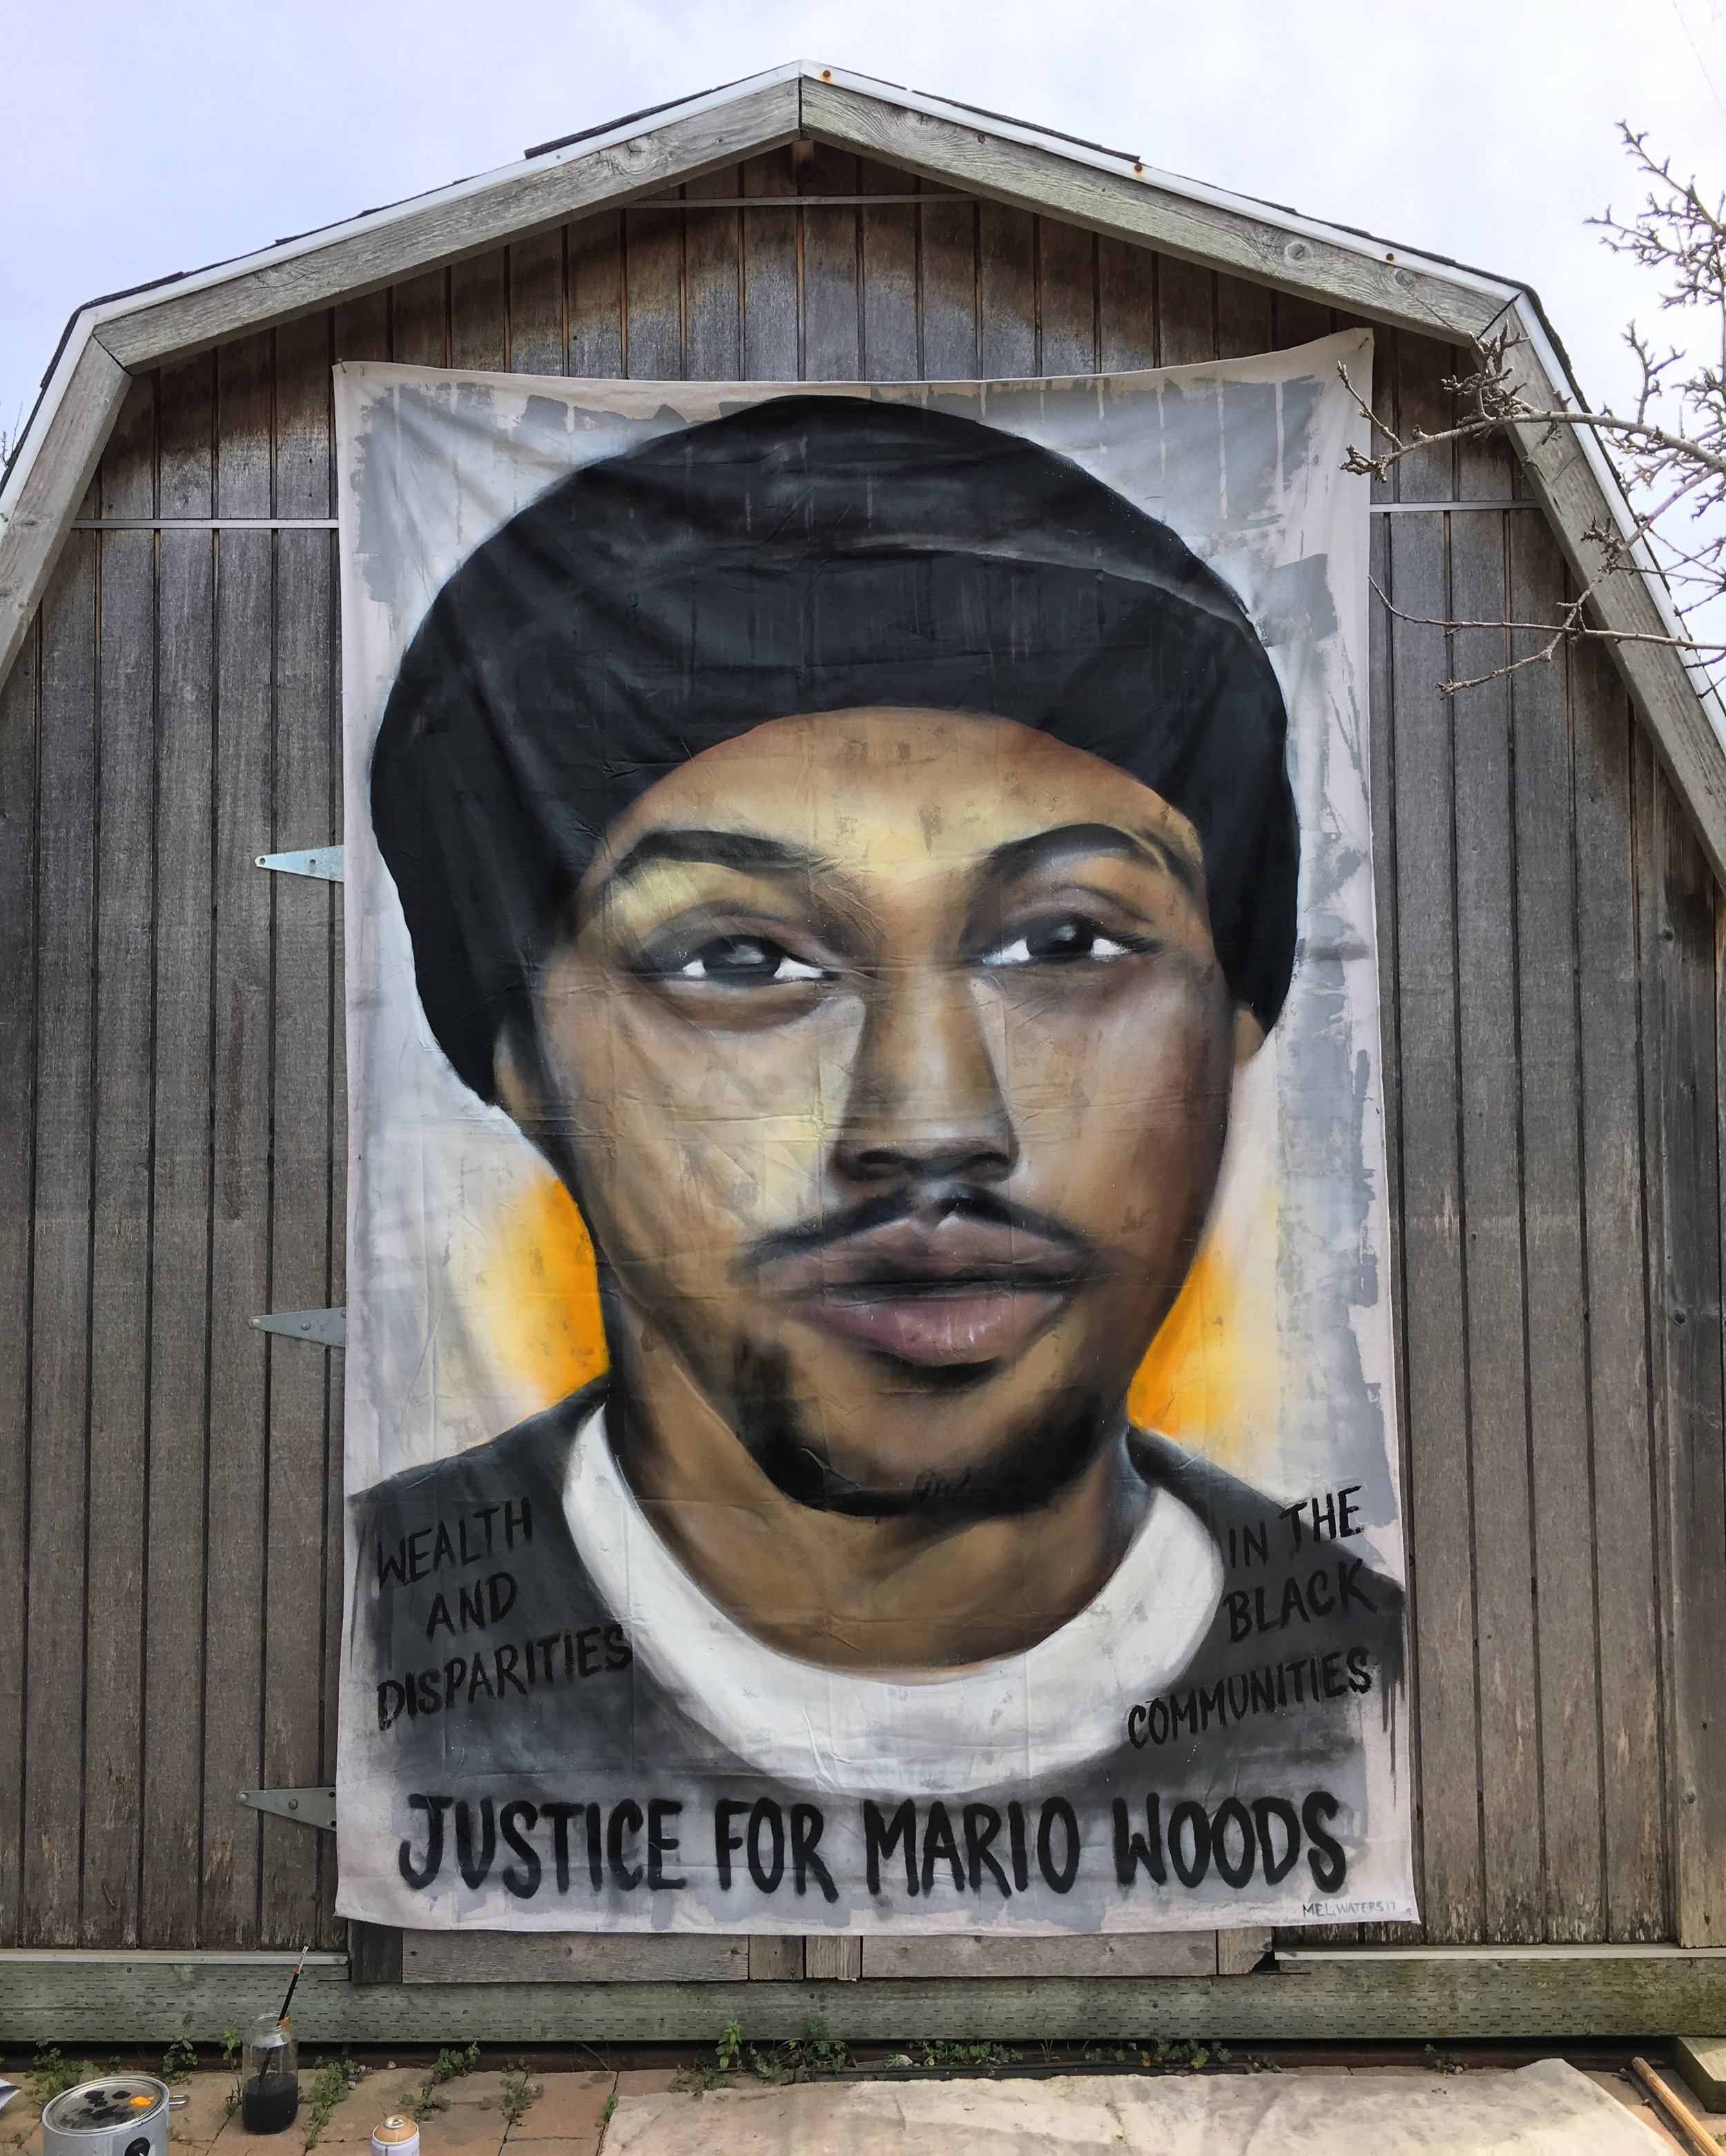 Justice For Mario Woods